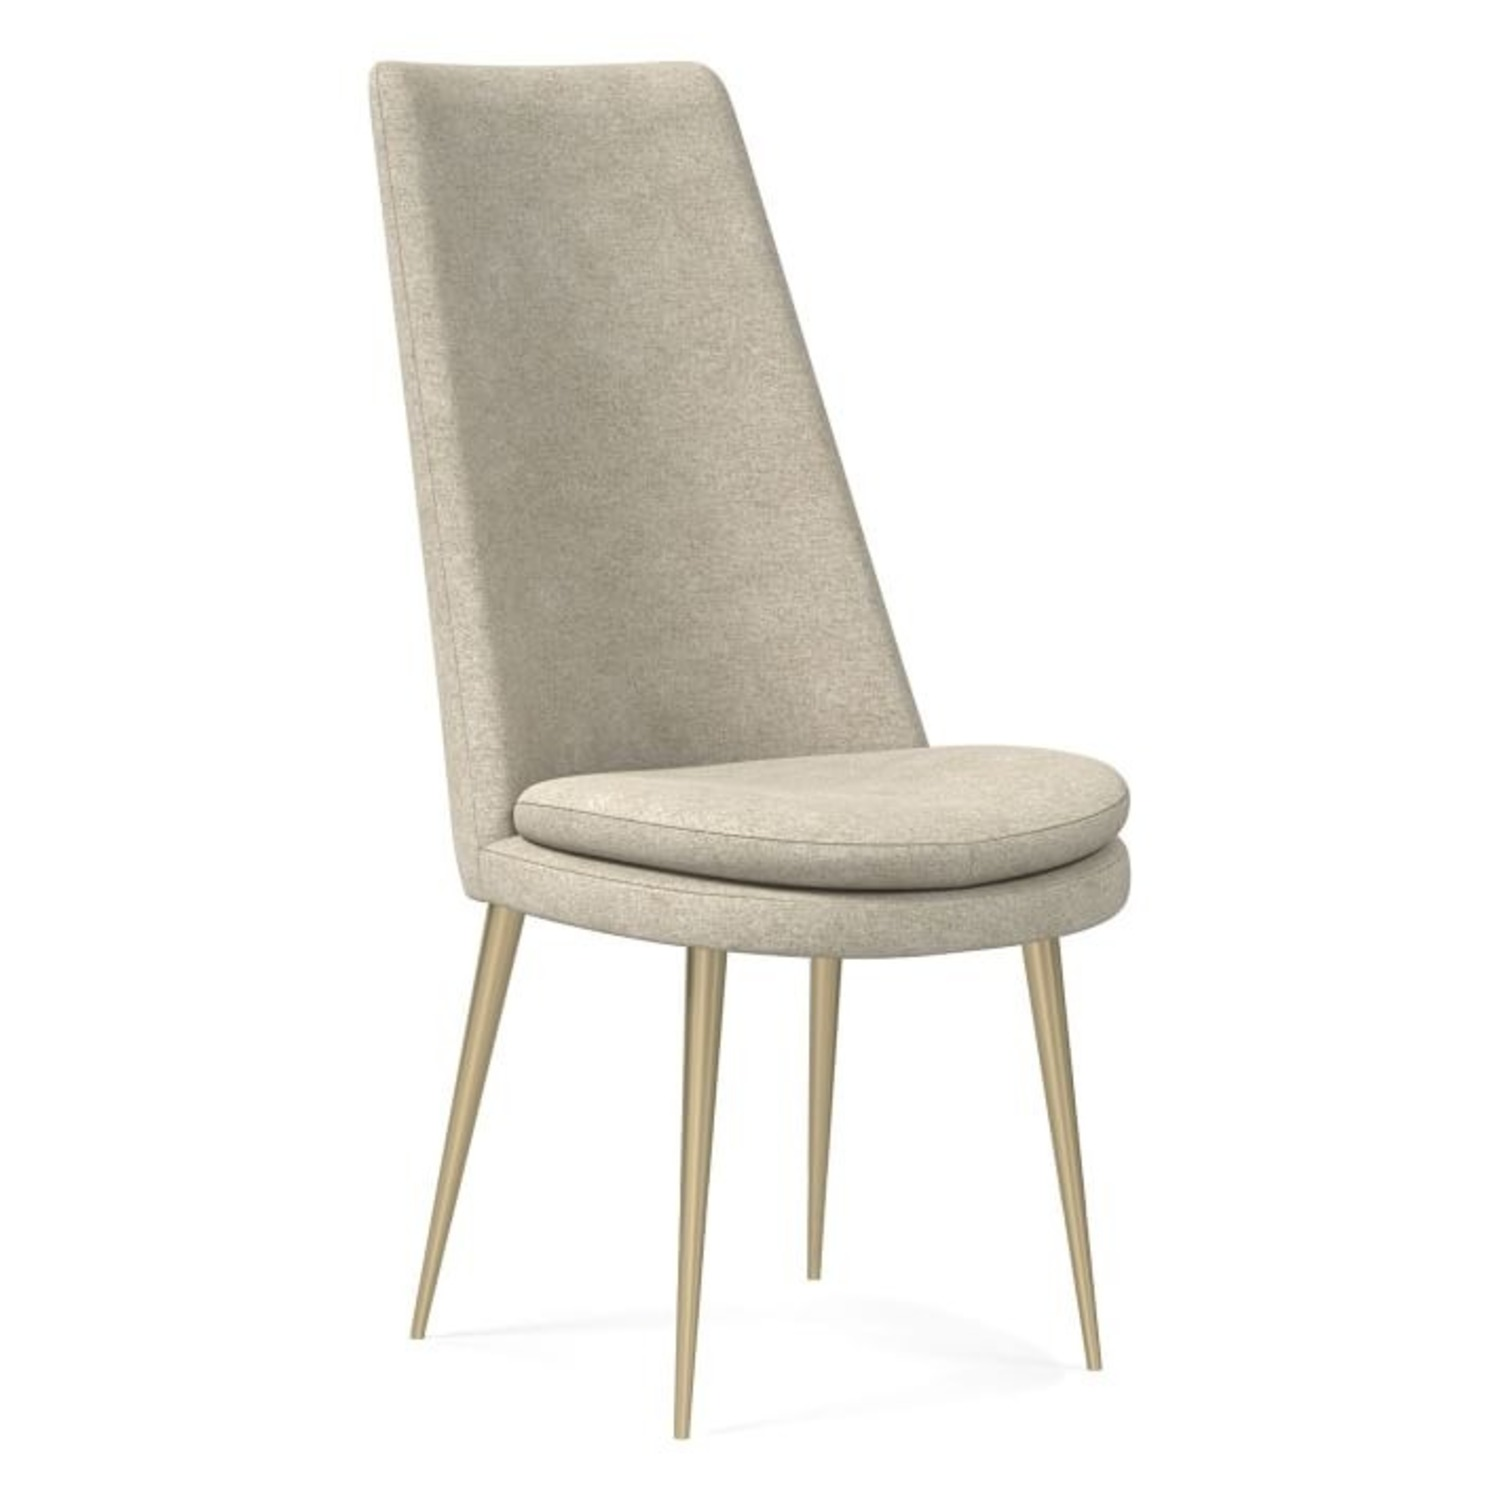 West Elm Finley High Back Dining Chair - image-3